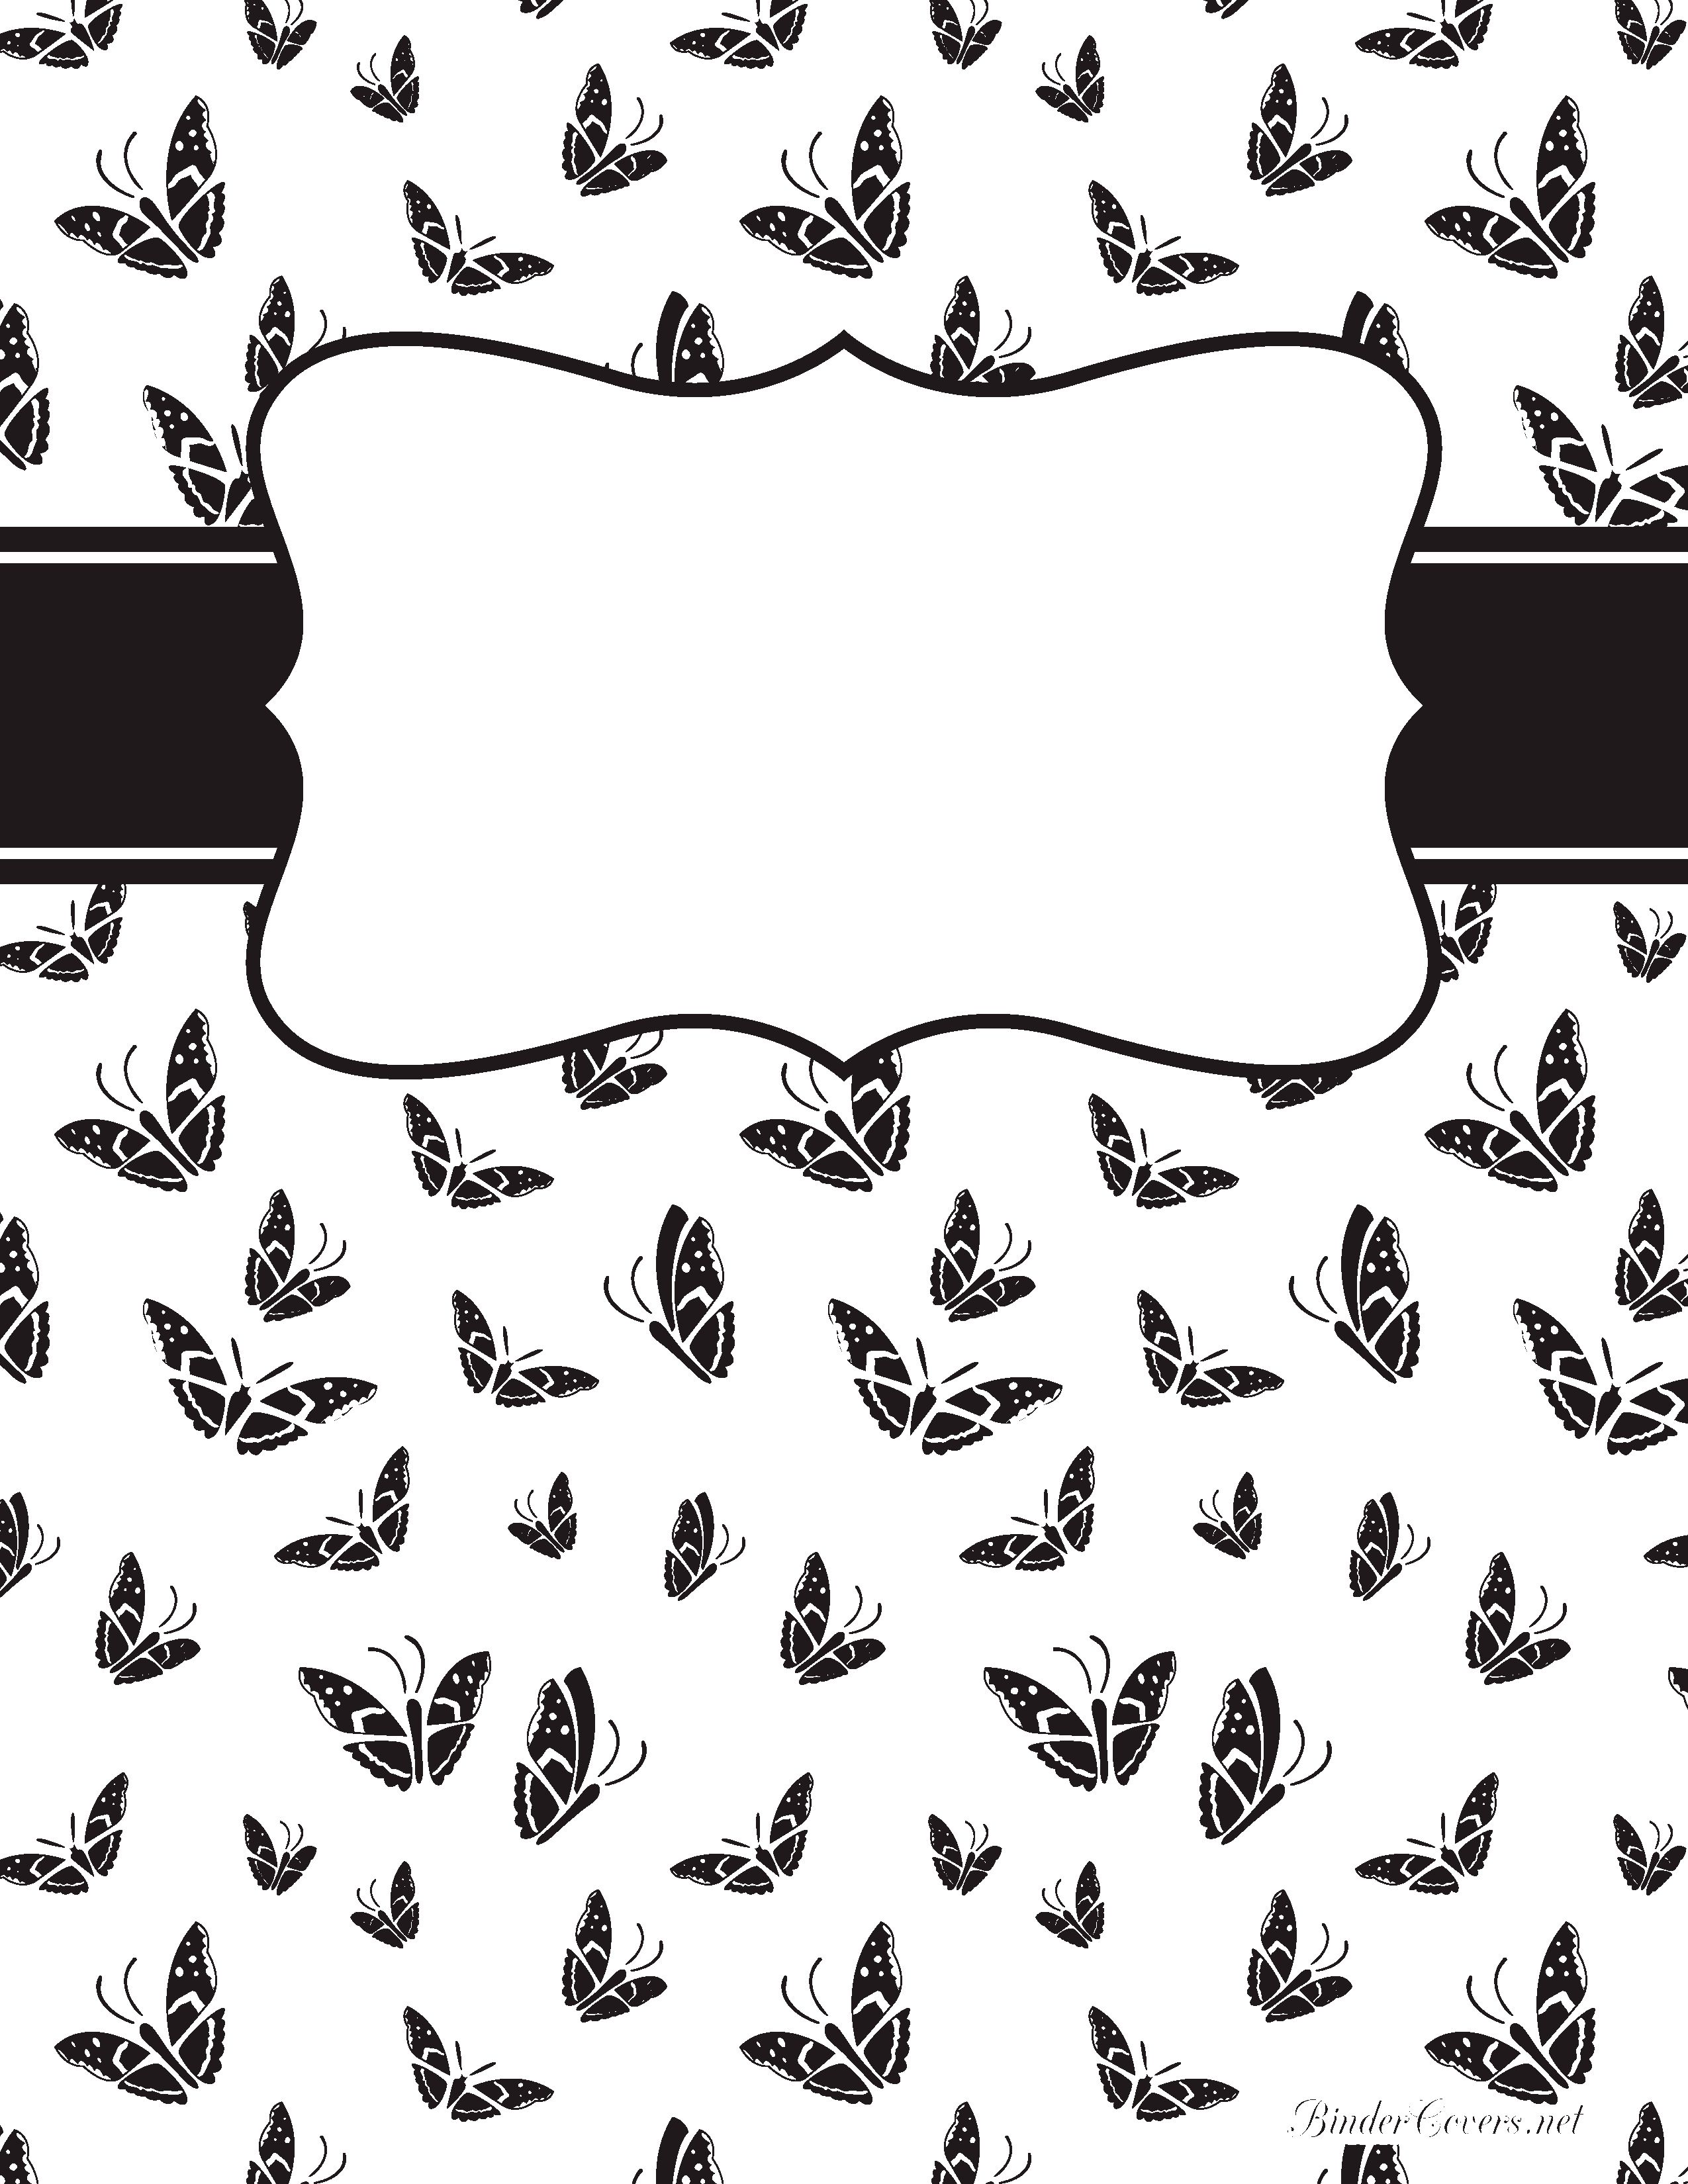 Black And White Butterfly Binder Cover Watermarked Jpg 2 550 3 300